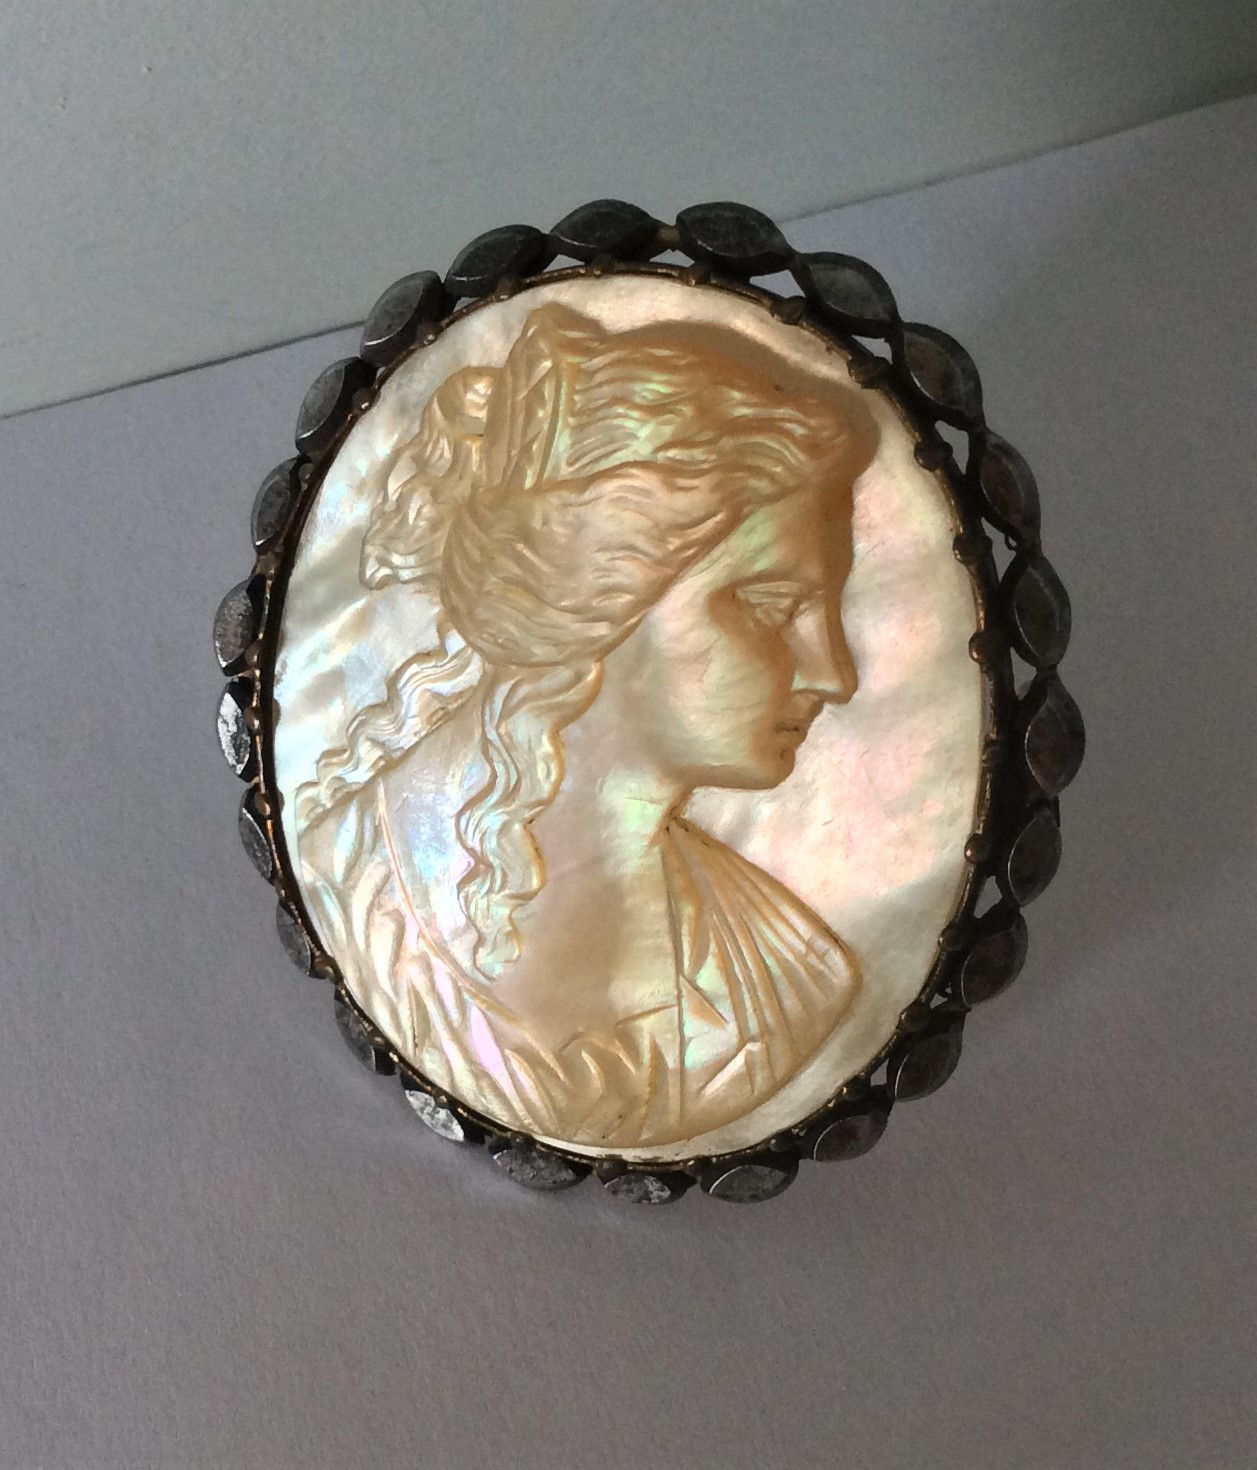 Stunning Quality Antique Large Victorian Mother of Pearl Carved Cameo Brooch. Mounted on gold tone metal with a cut steel frame. Size: 5cm x 4.5cm